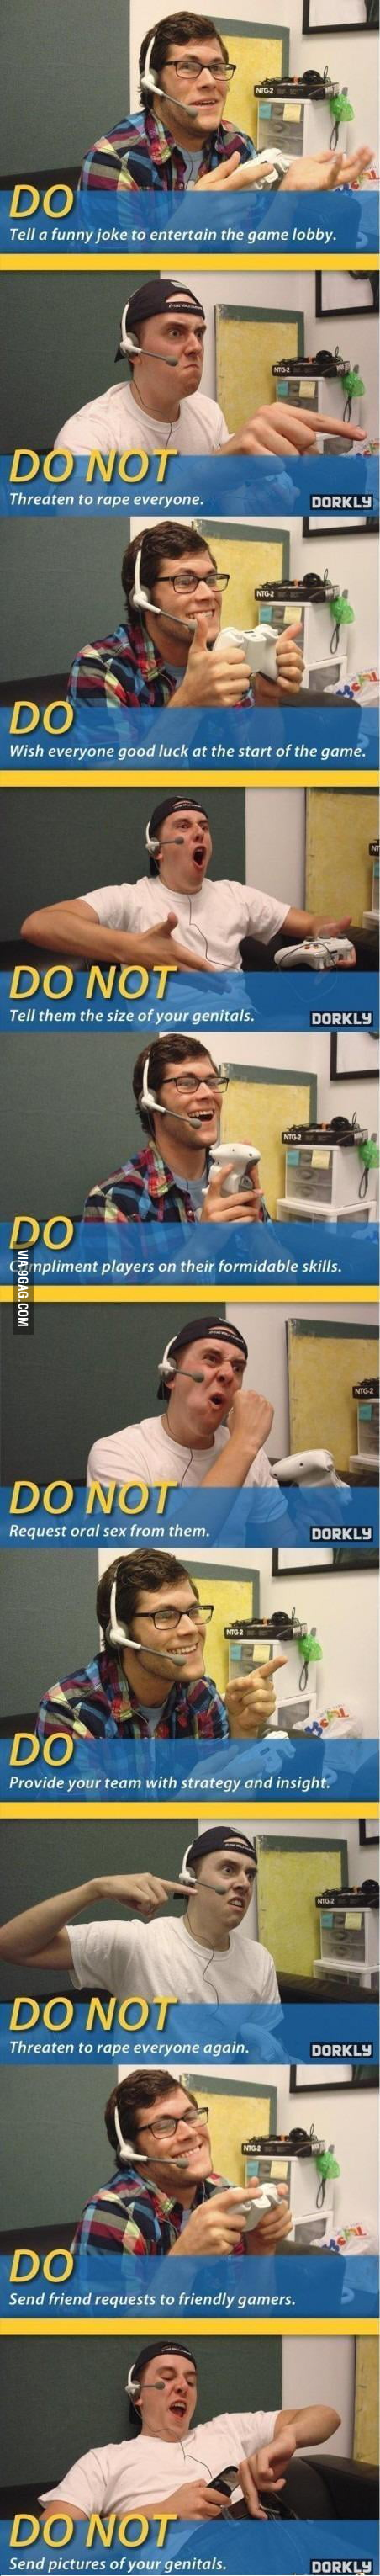 Online game rules